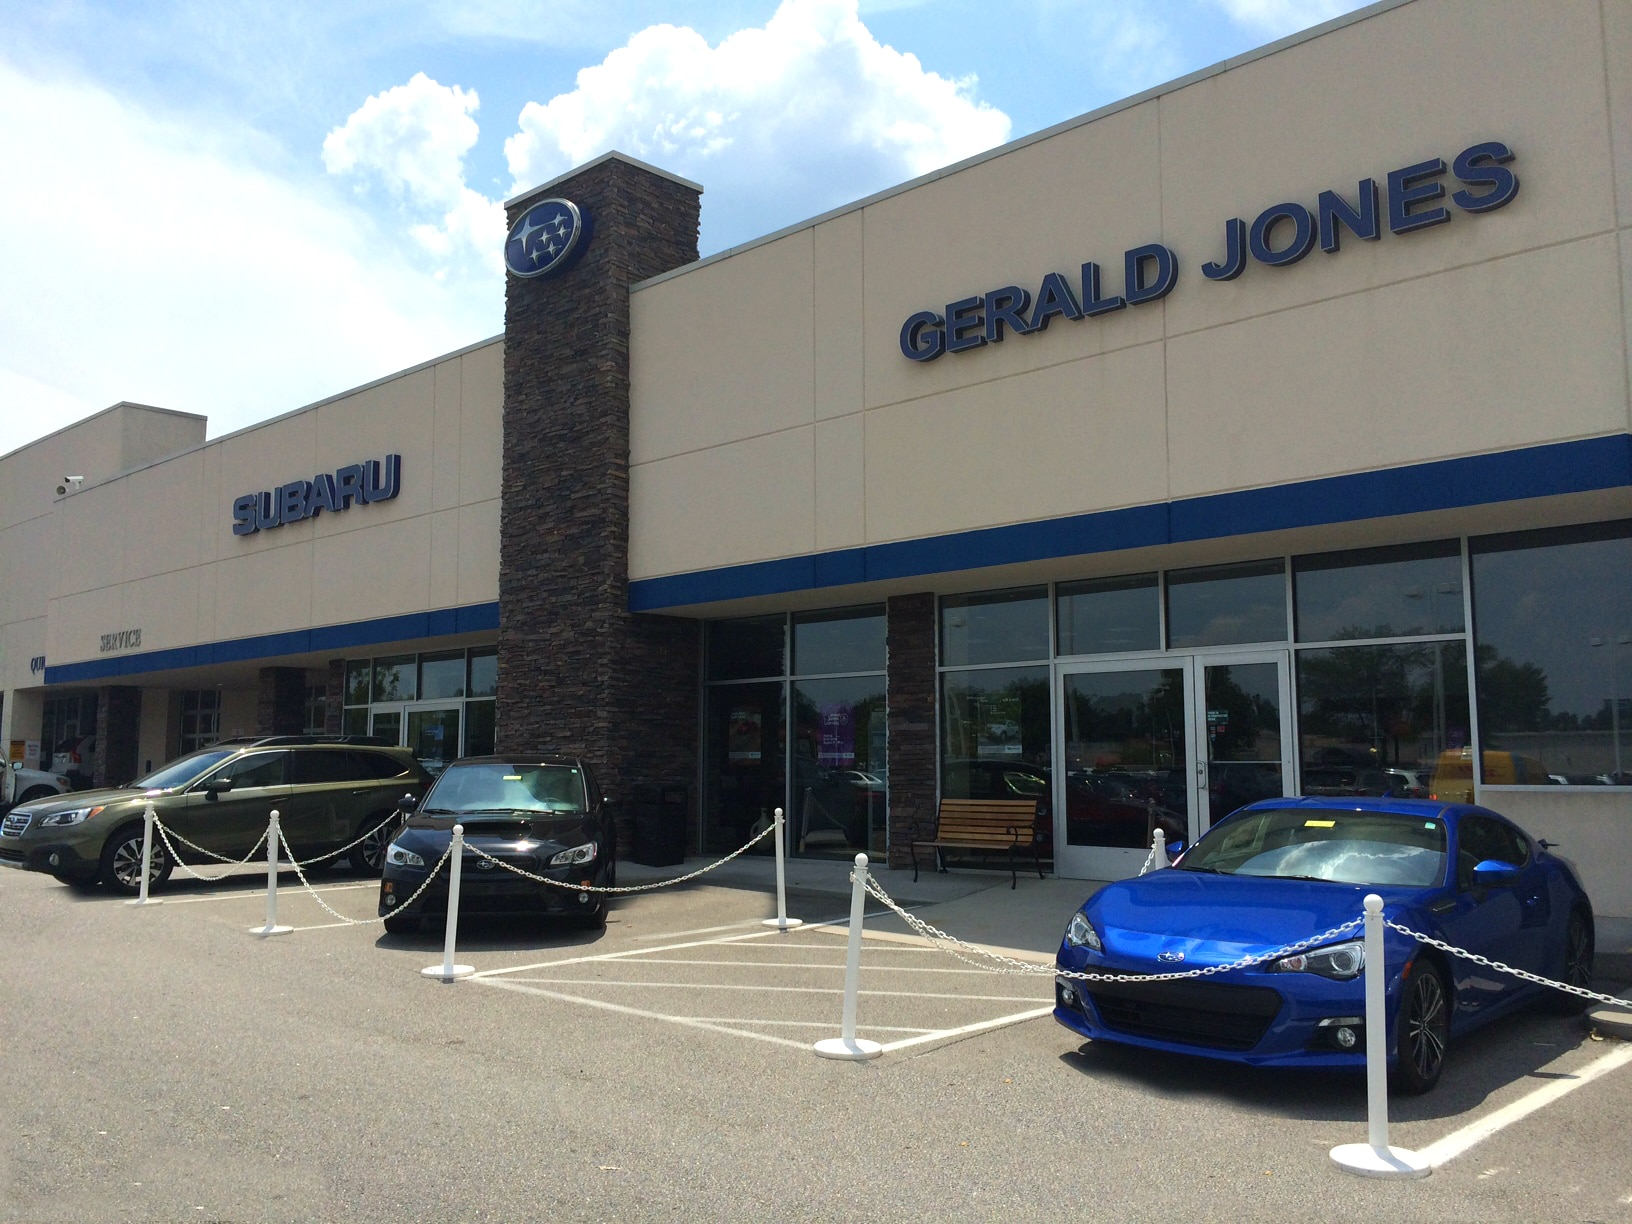 Gerald Jones Subaru New Used Subaru Dealer Serving Augusta - Car show augusta ga